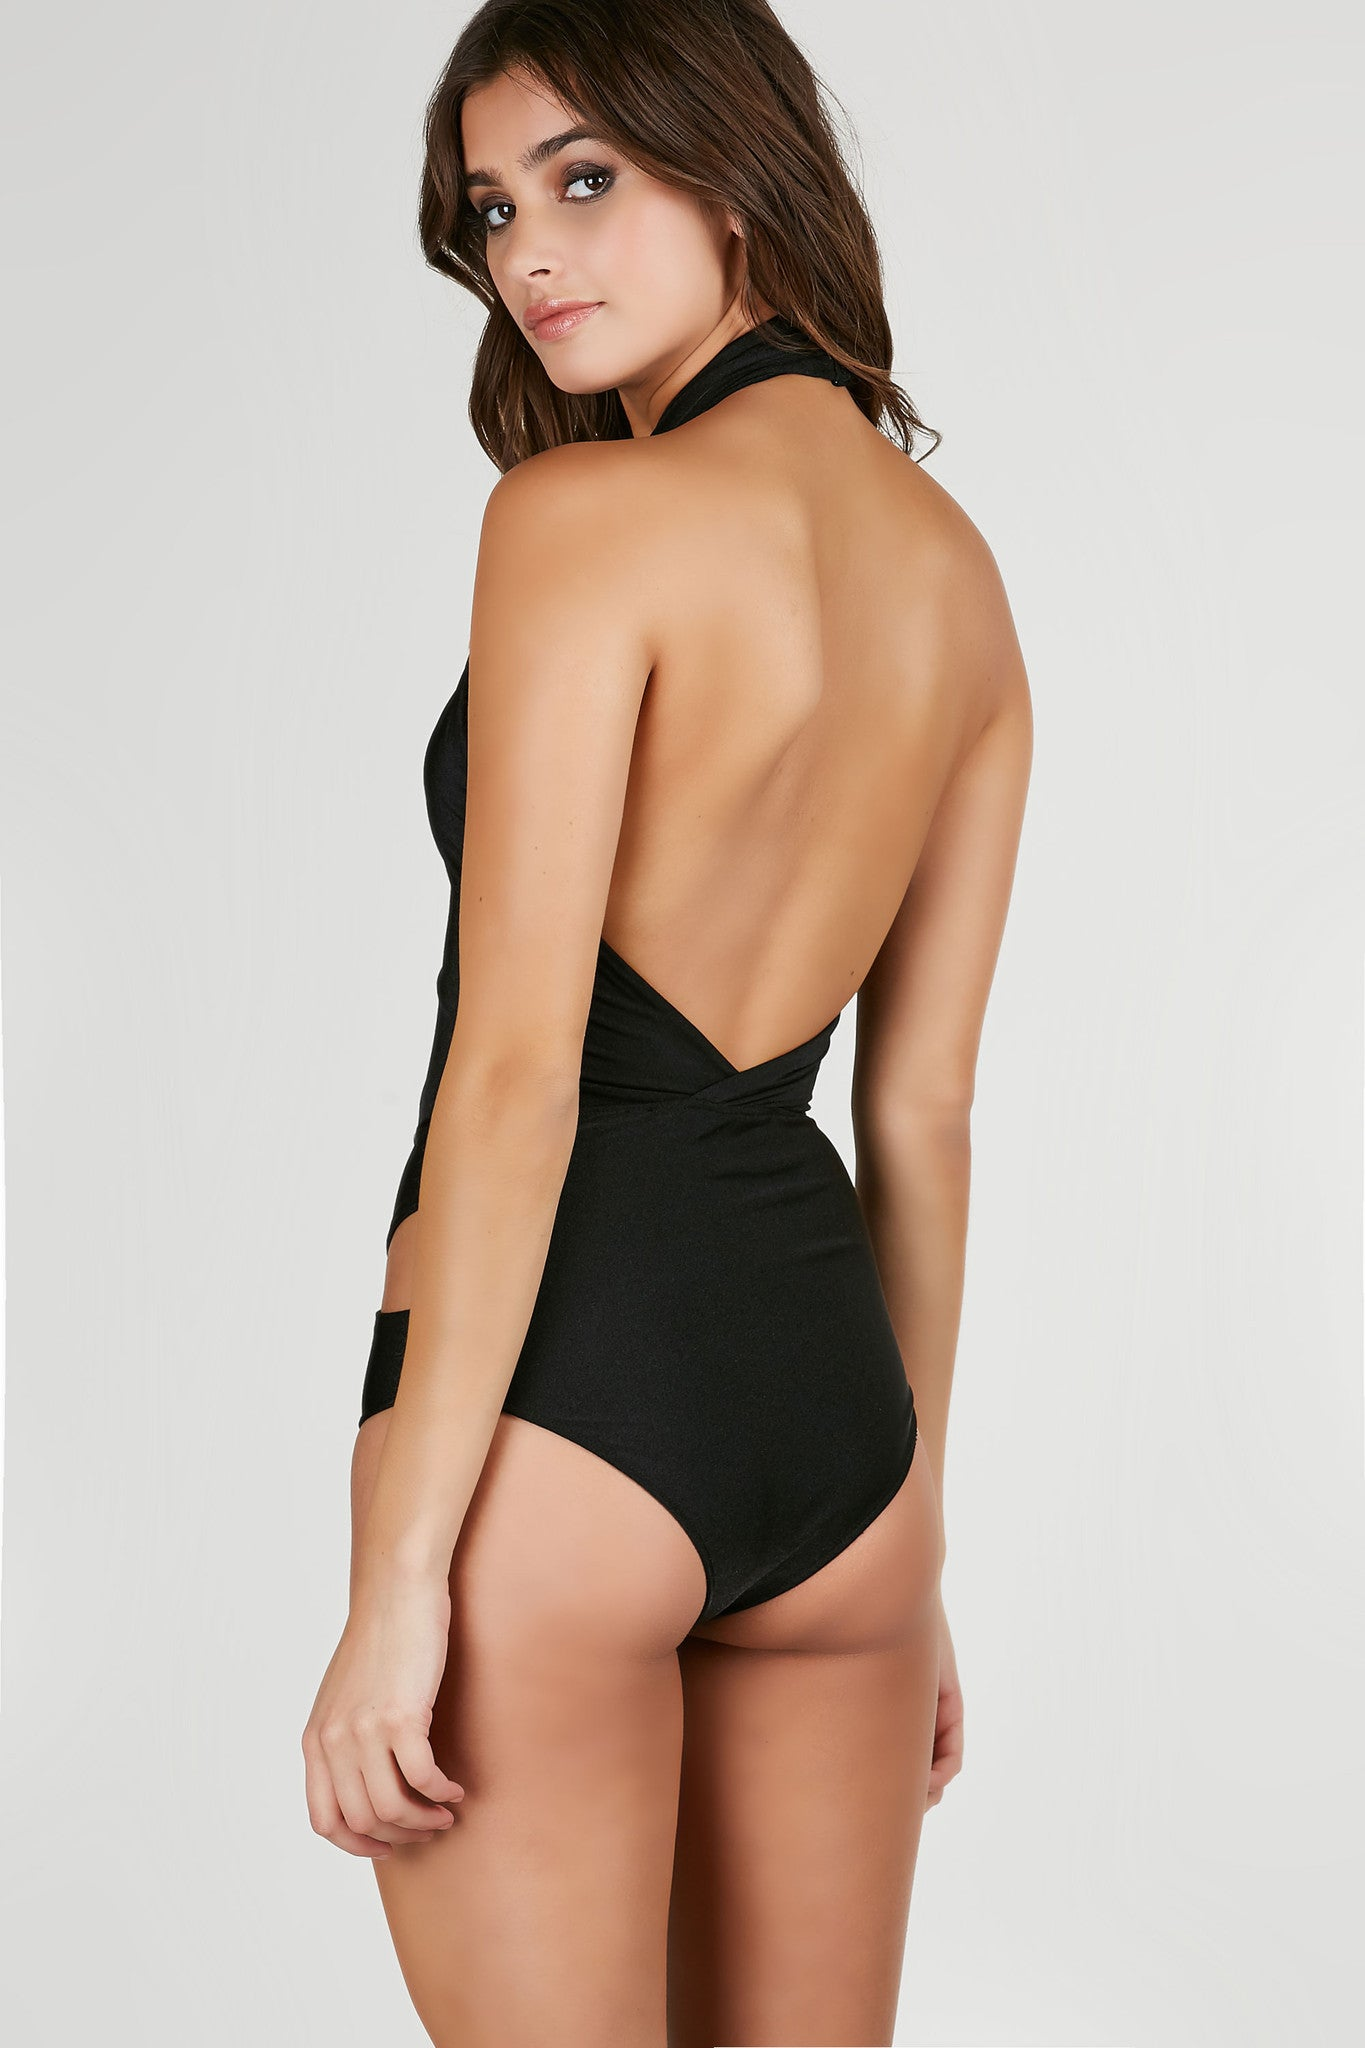 Halter bathingsuit with chic twist detailing and cut outs throughout. Open back with cheeky cut.